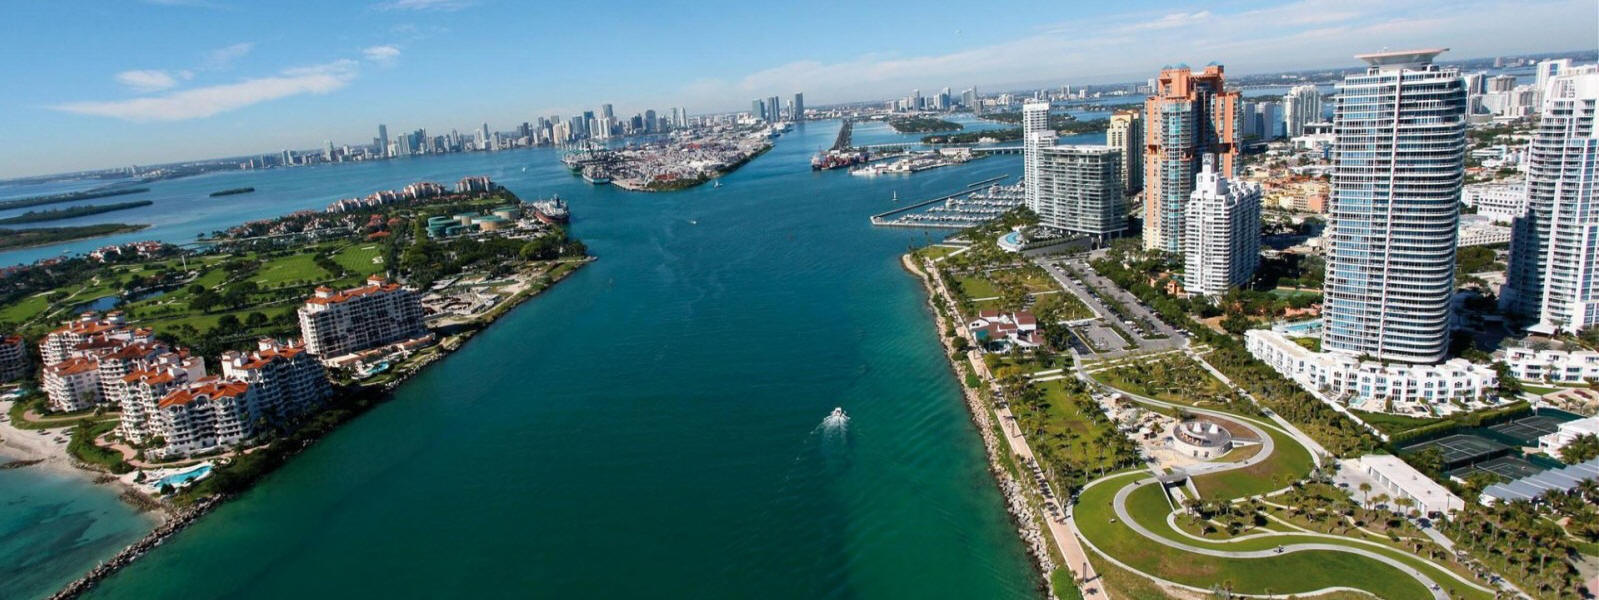 South Florida Commercial Real Estate